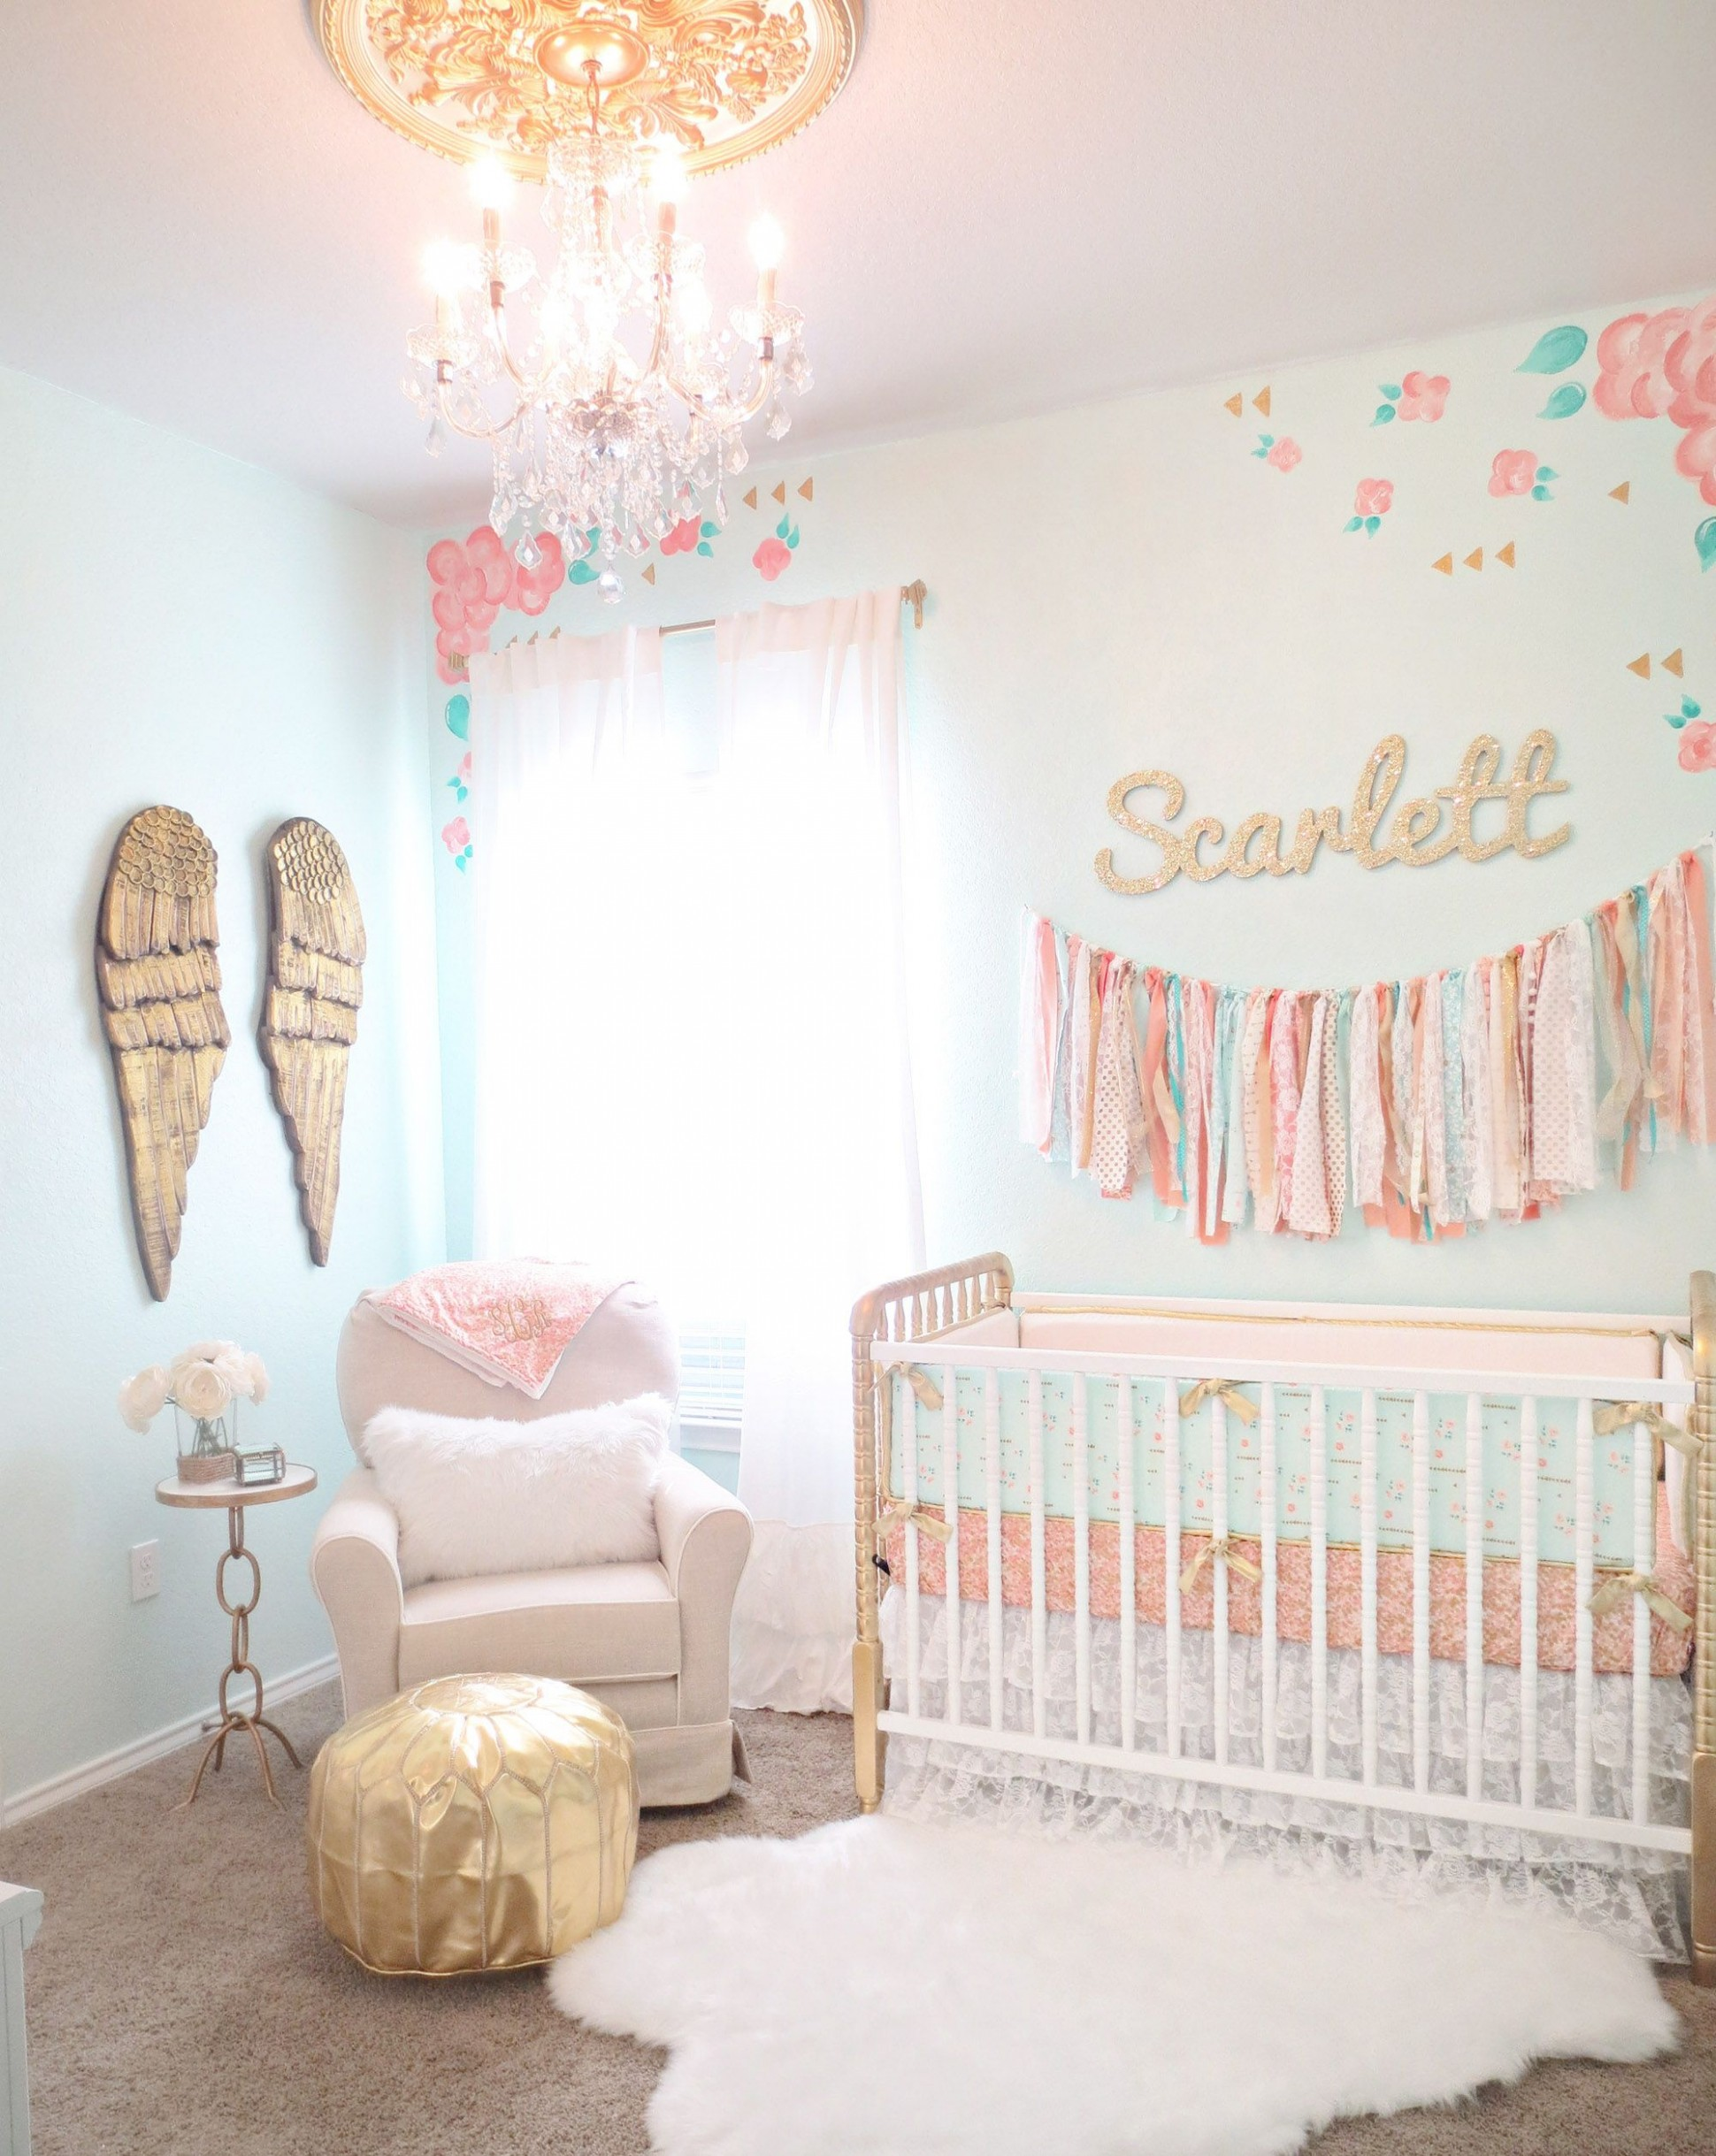 Design Reveal: Vintage Lace Nursery - Project Nursery  Baby girl  - Baby Room Decor Girl